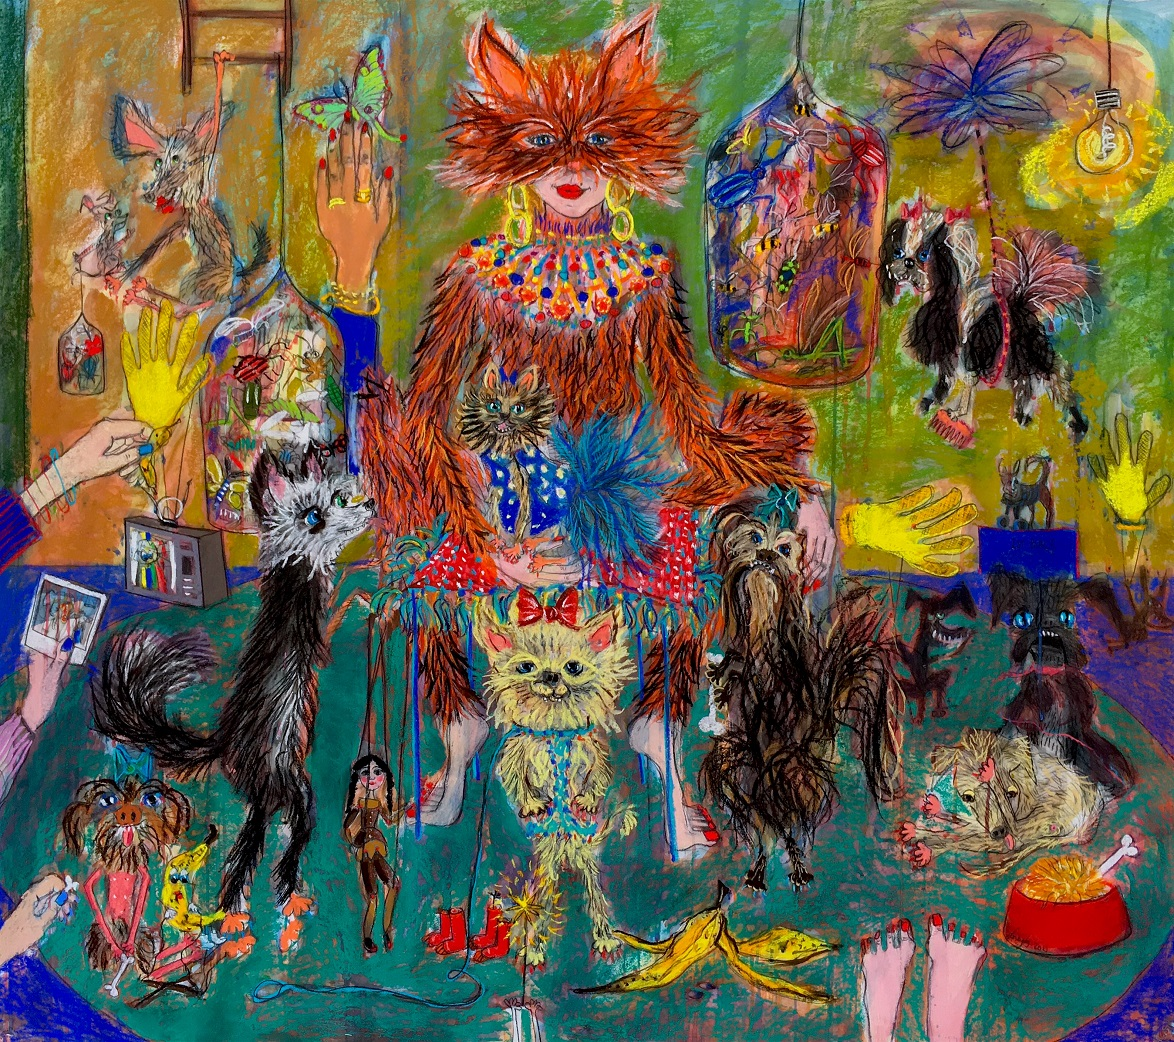 Stellas-Dog-Show-155-x-138-cm-Pastel-and-ink-on-paper-2018- (1).jpg